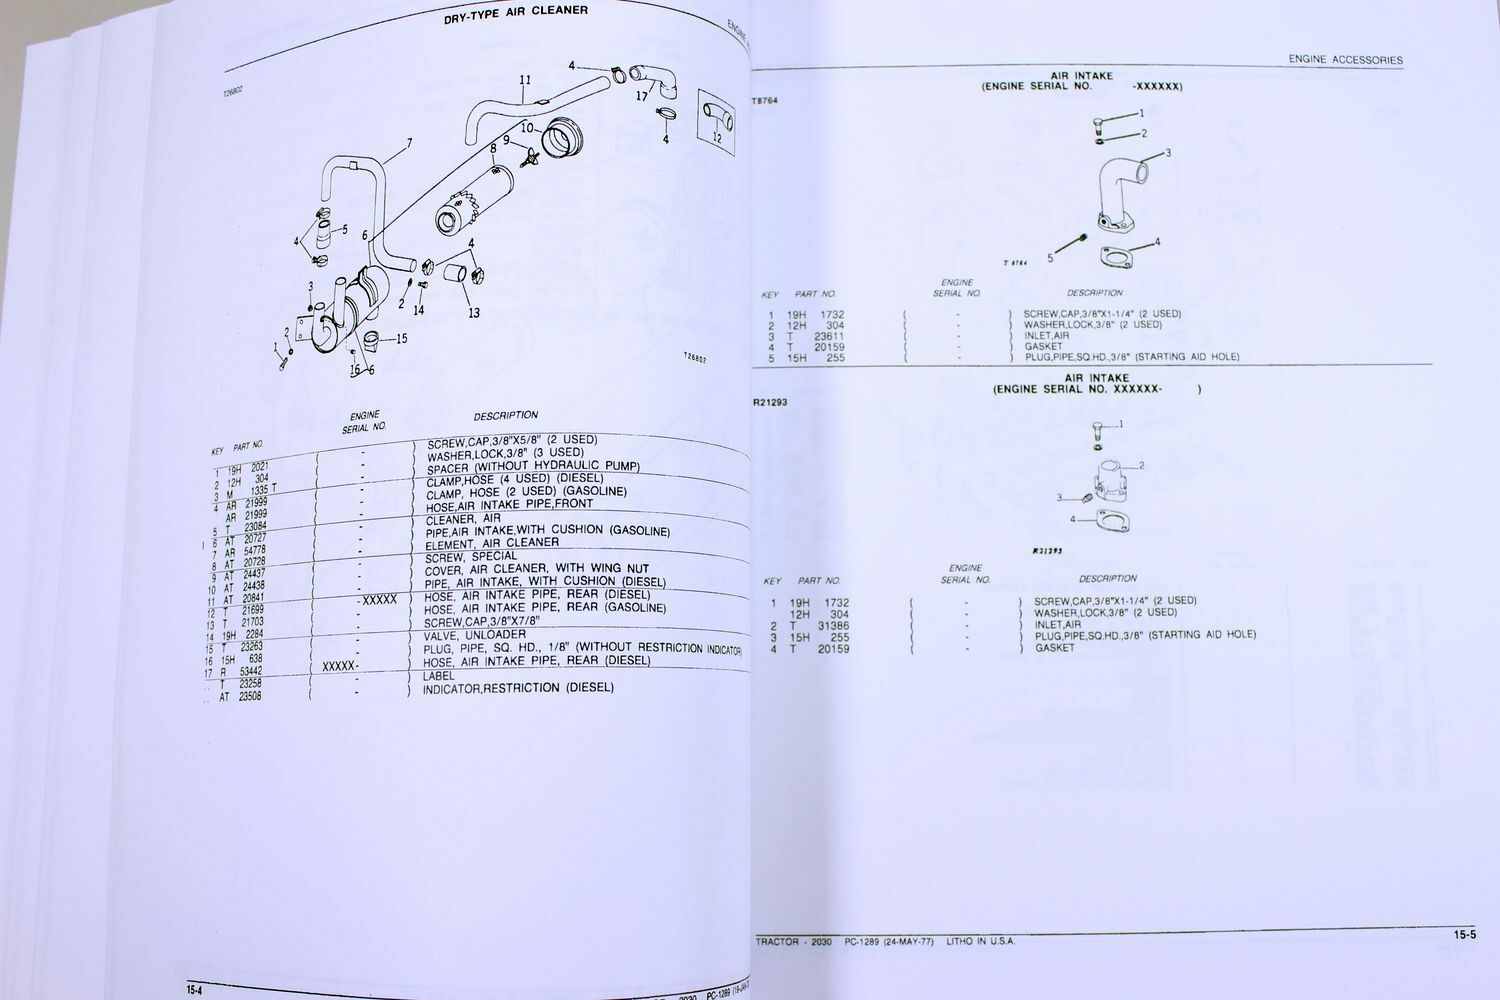 John Deere 2030 Tractor Parts Manual Catalog Assembly Exploded Views Case 580se Wiring Diagram Numbers Ebay